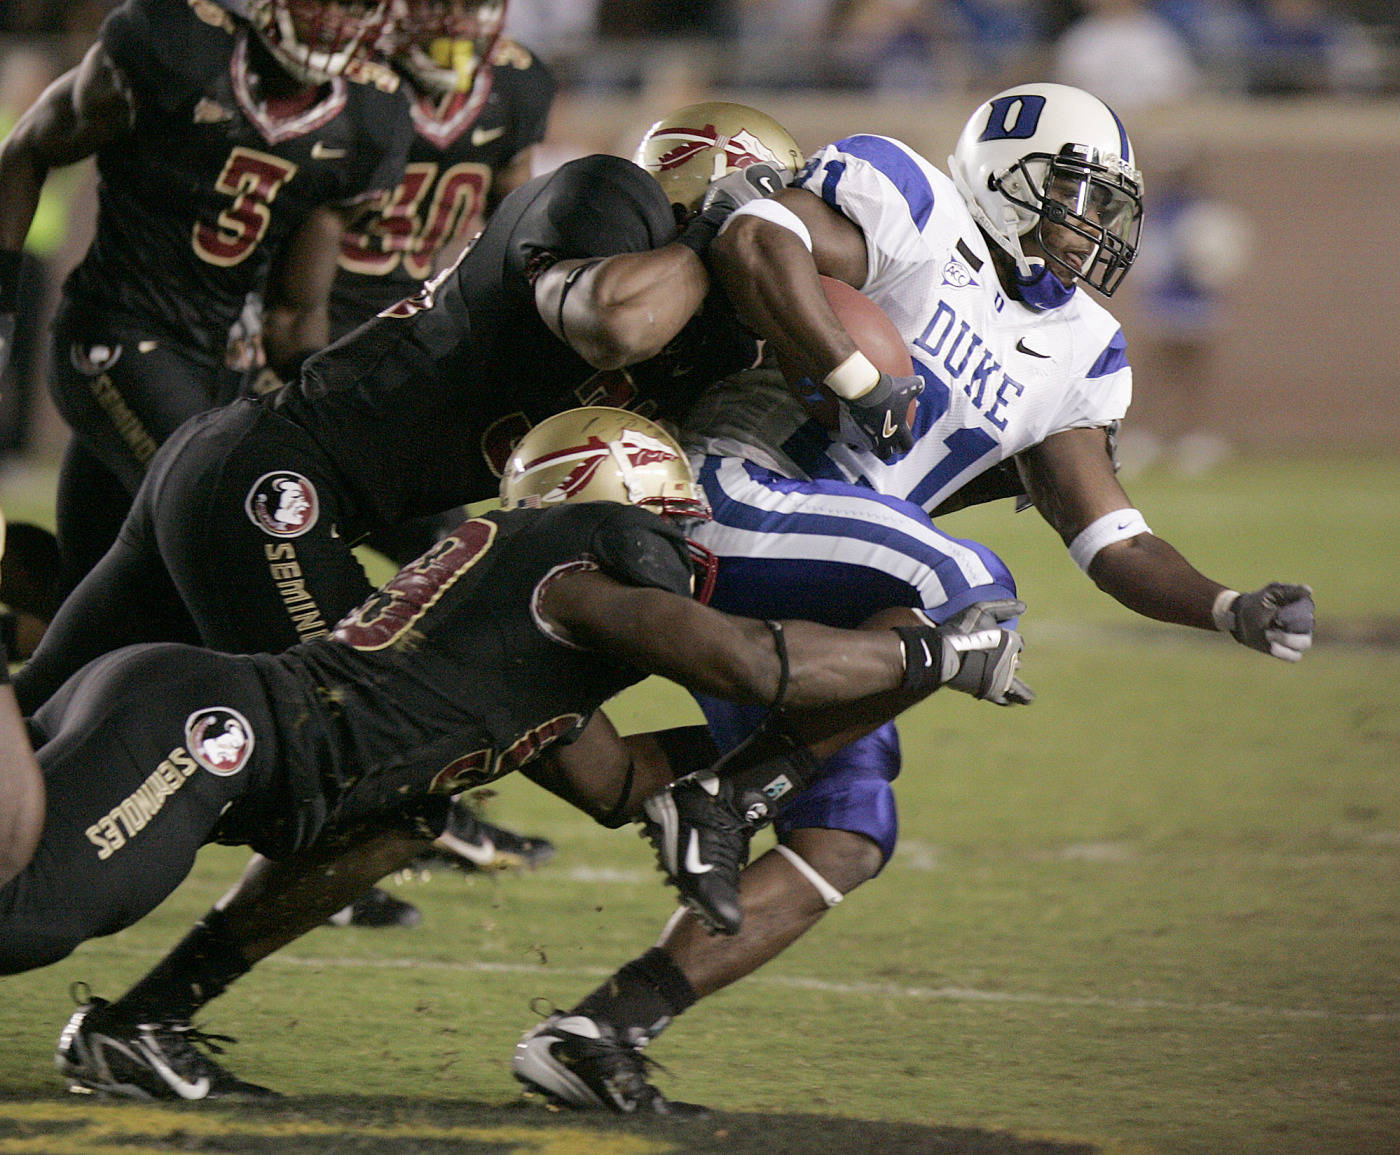 Duke's Re'quan Boyette tries to turn the corner on the Florida State defense. (AP Photo/Steve Cannon)